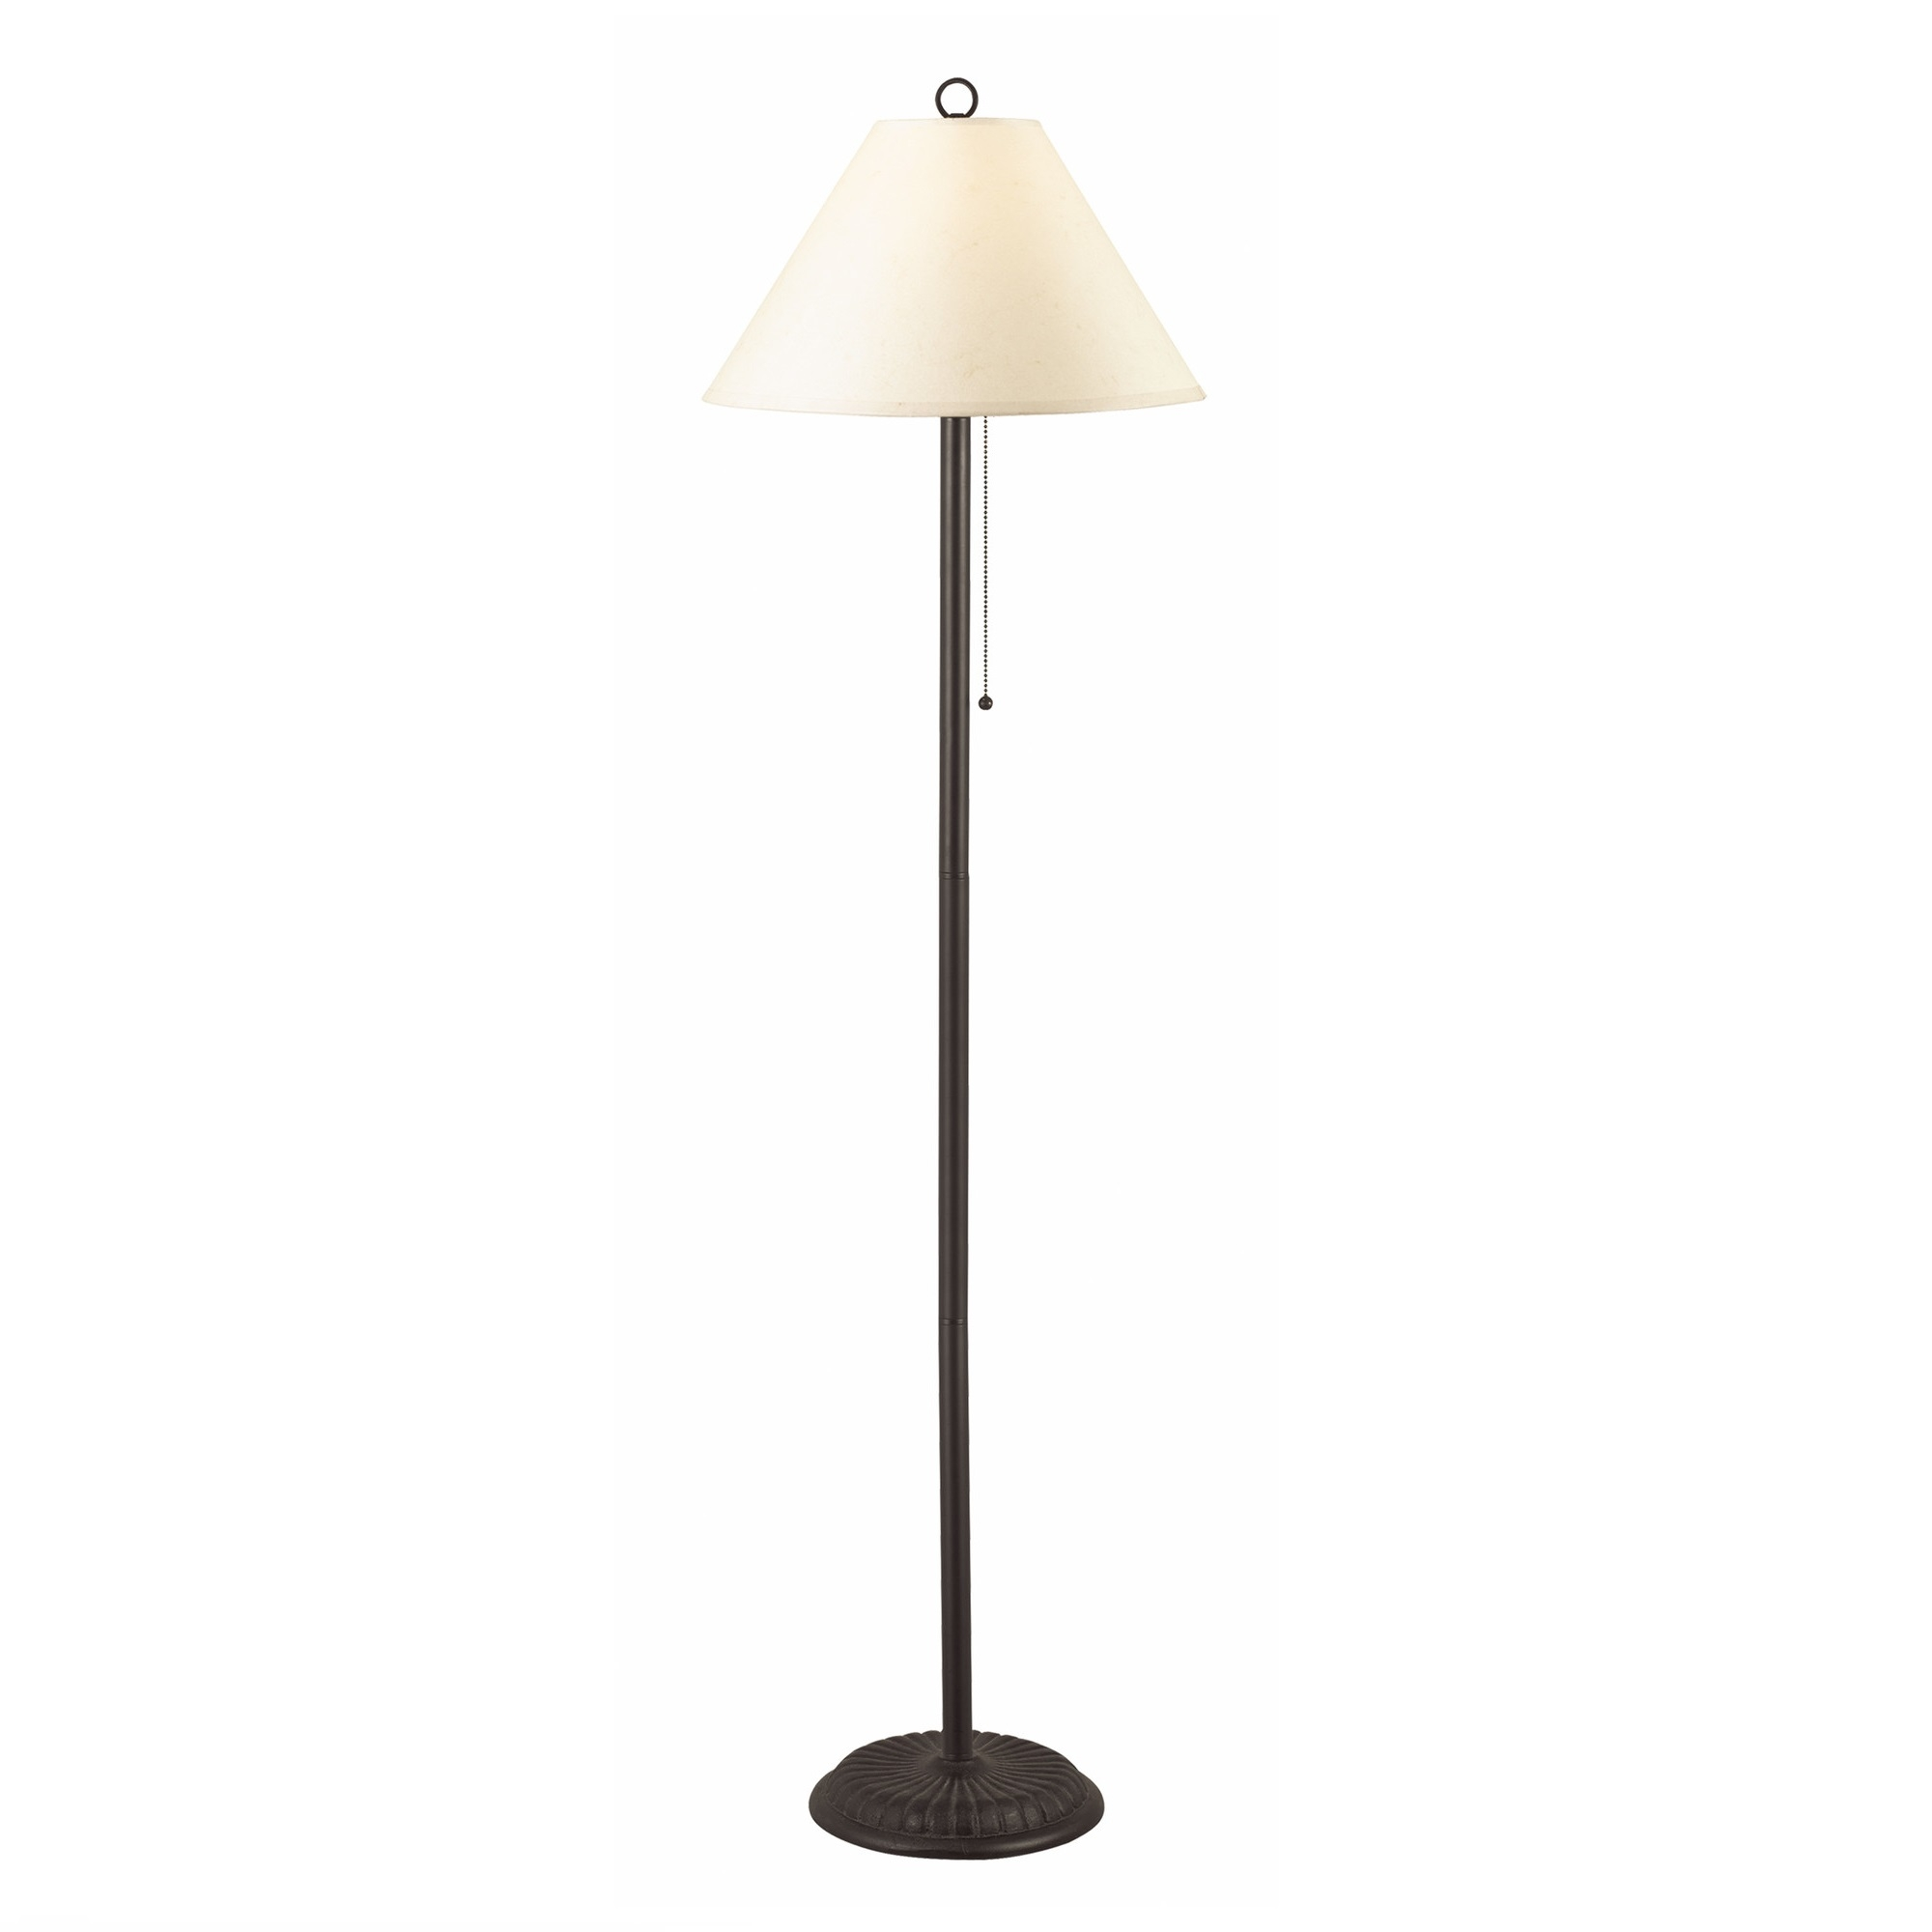 Cal lighting candlestick floor lamp l brilliant source lighting cal lighting candlestick floor lamp bo 904fl ow aloadofball Image collections